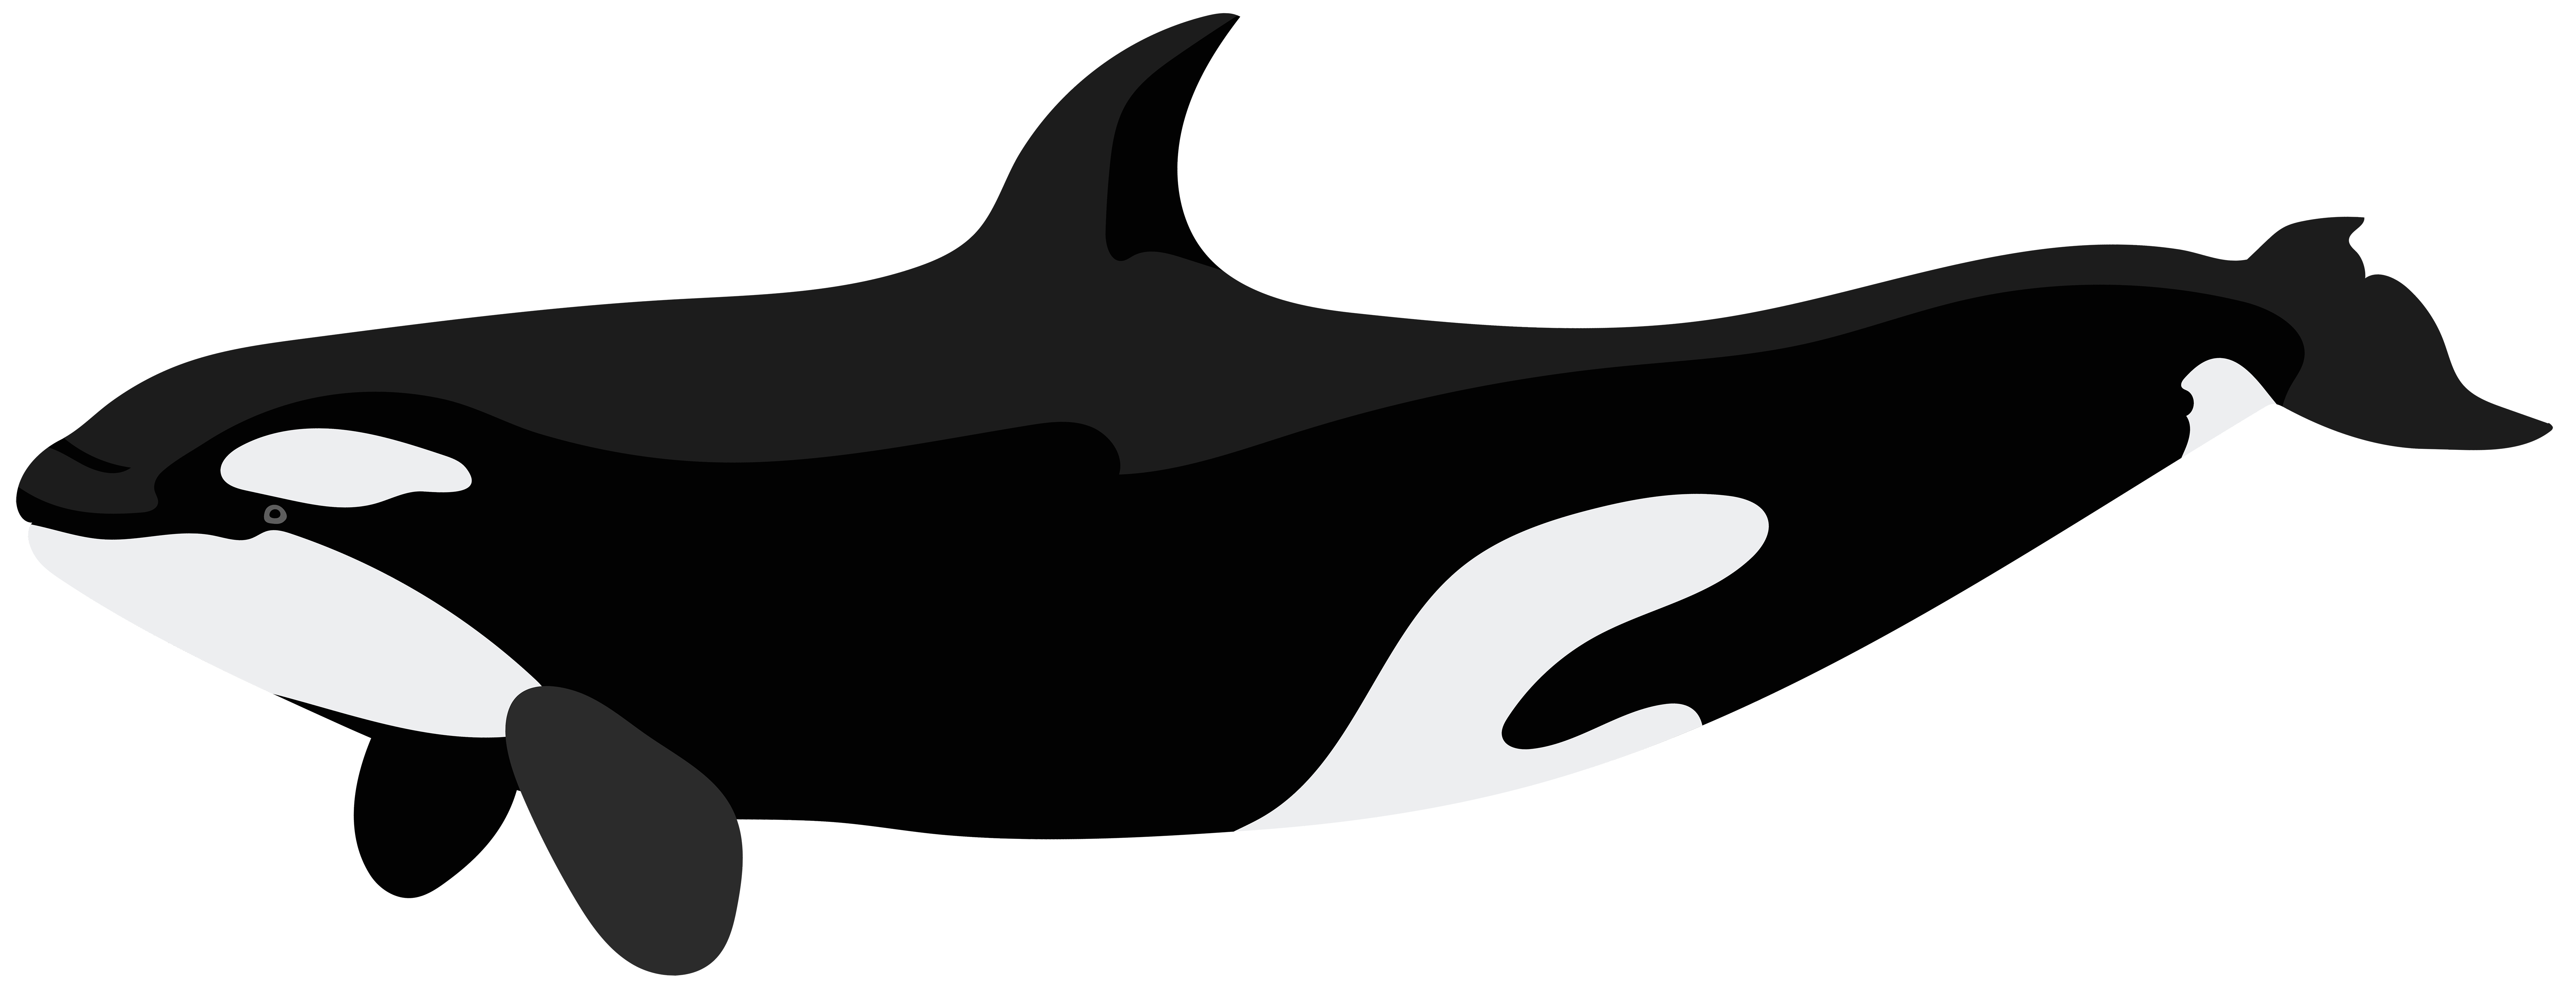 Killer whale clip art. Dolphin clipart underwater